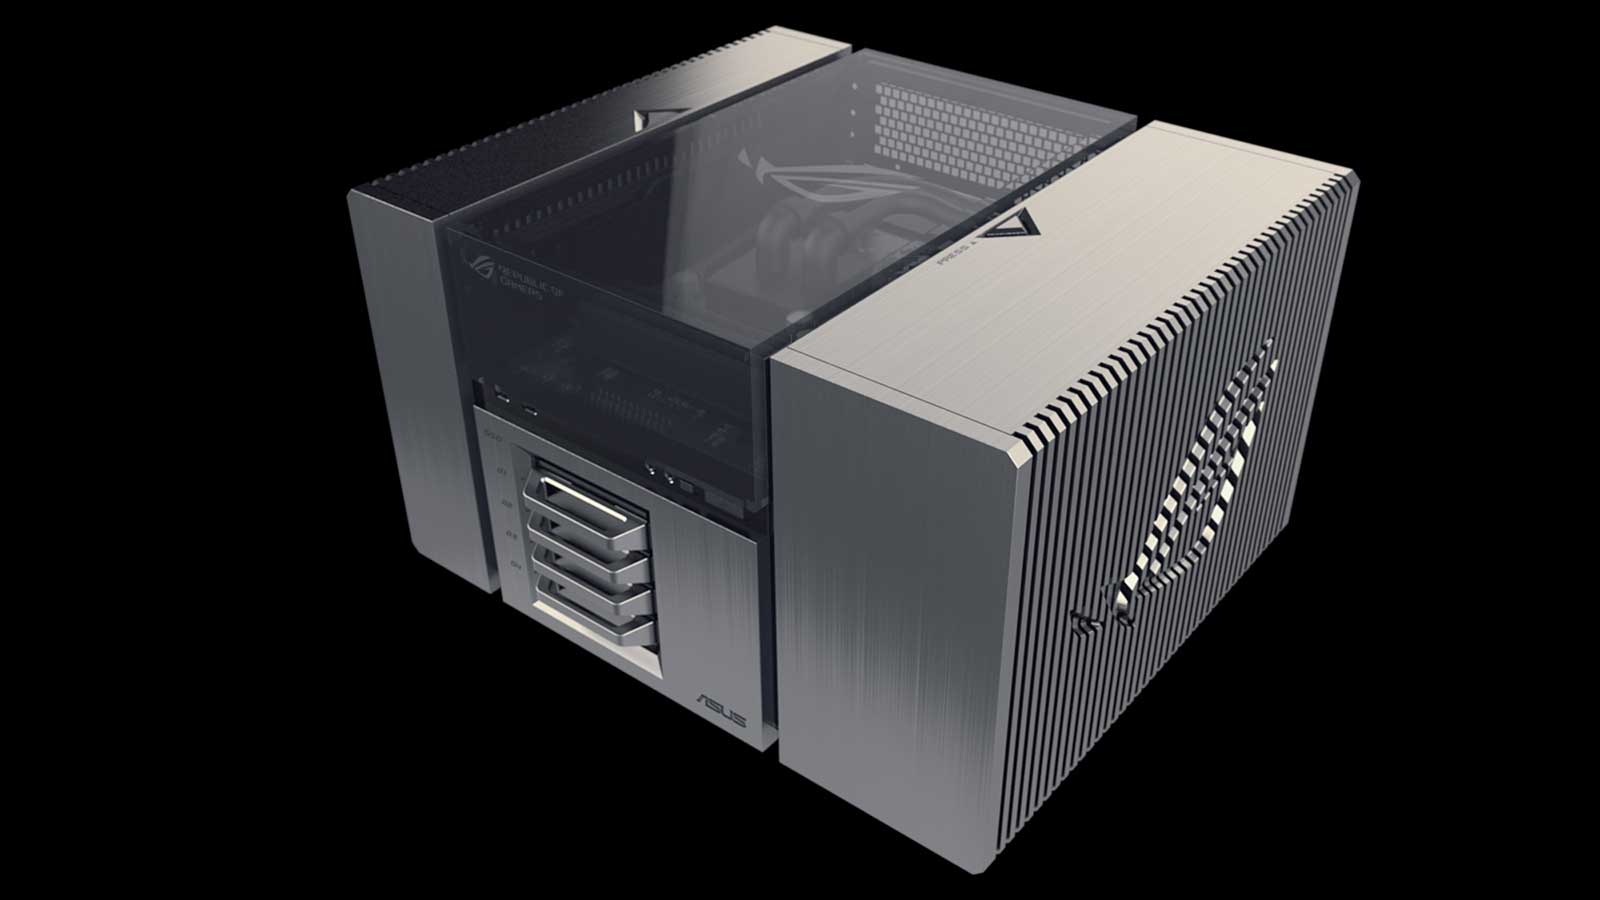 ASUS ROG AVALON GAMING PC